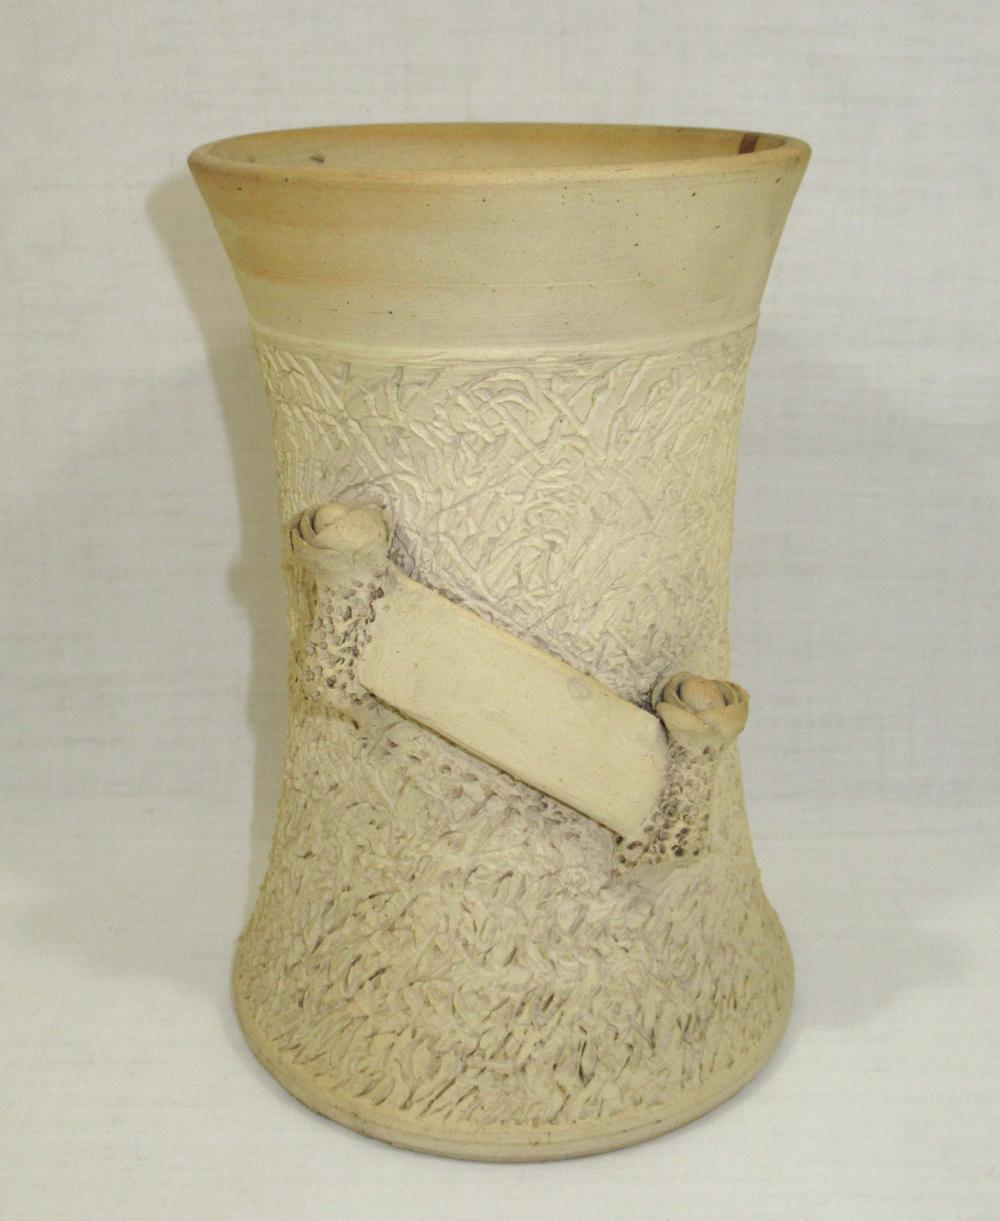 Evans Pottery Decorated Vase